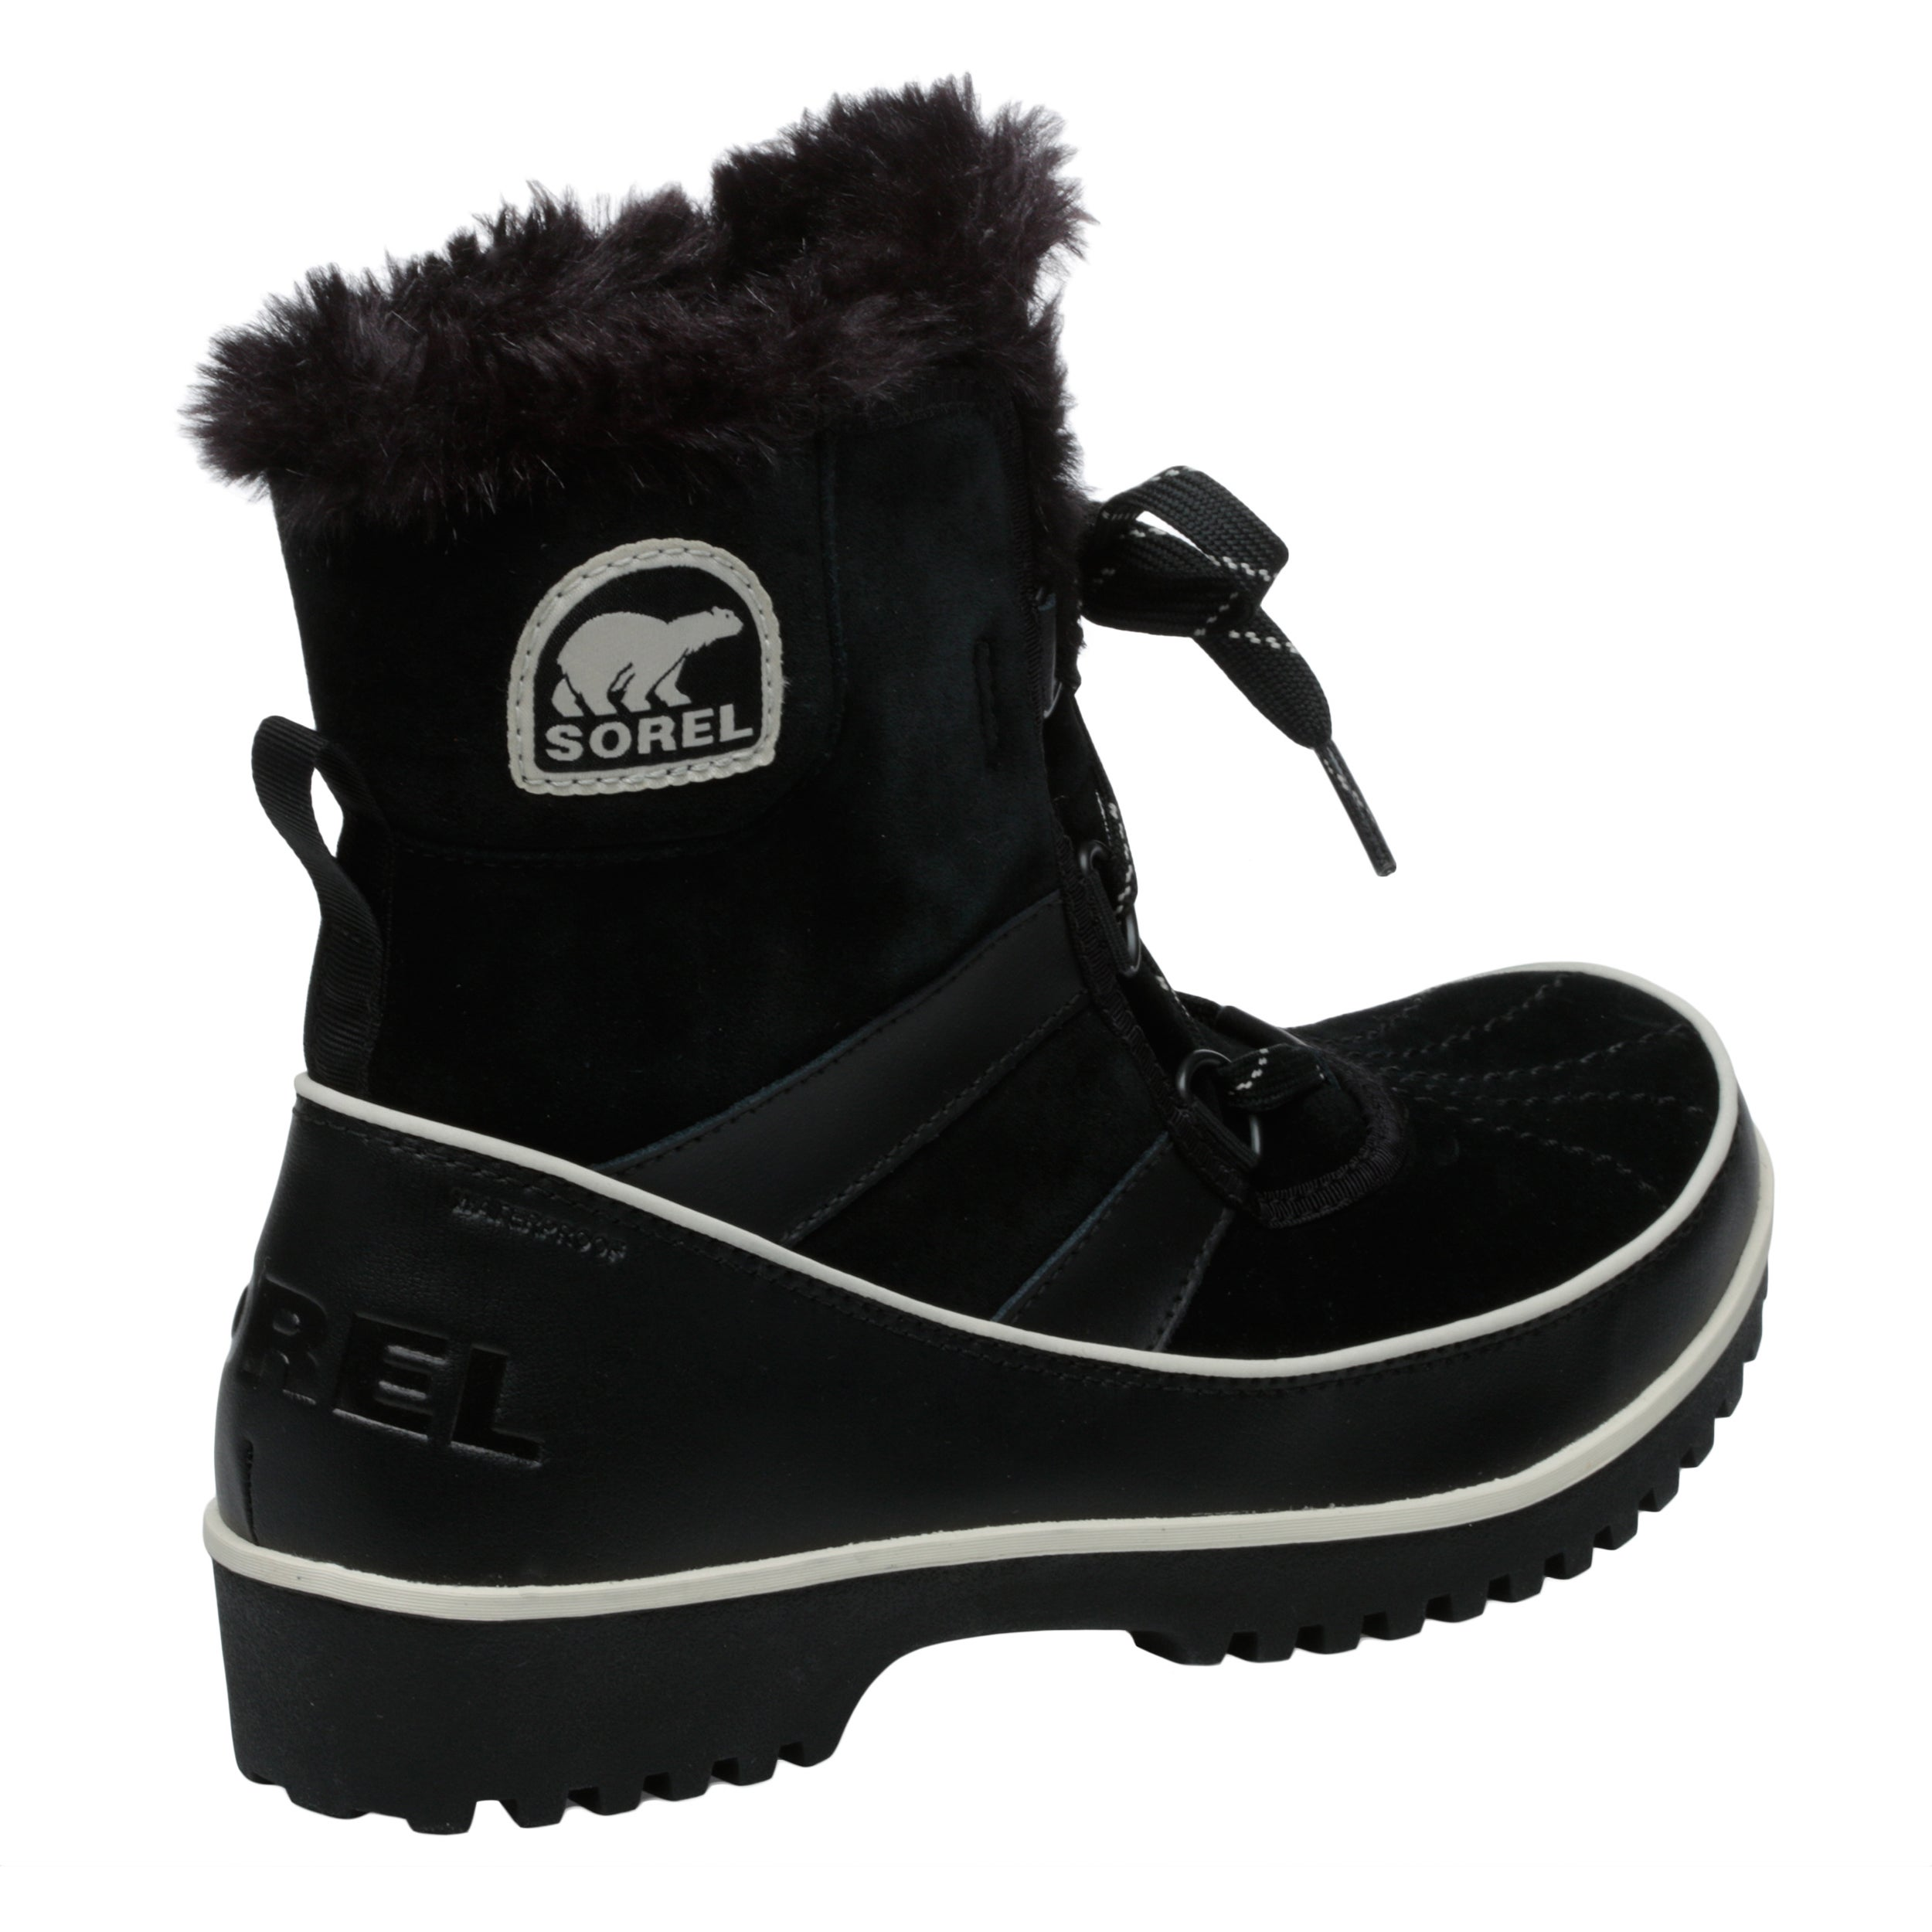 best cheap c7a1b 7e128 Shop Sorel Women s  Tivoli II  Suede Mid-calf Cold Weather Boots - Free  Shipping Today - Overstock - 9539933